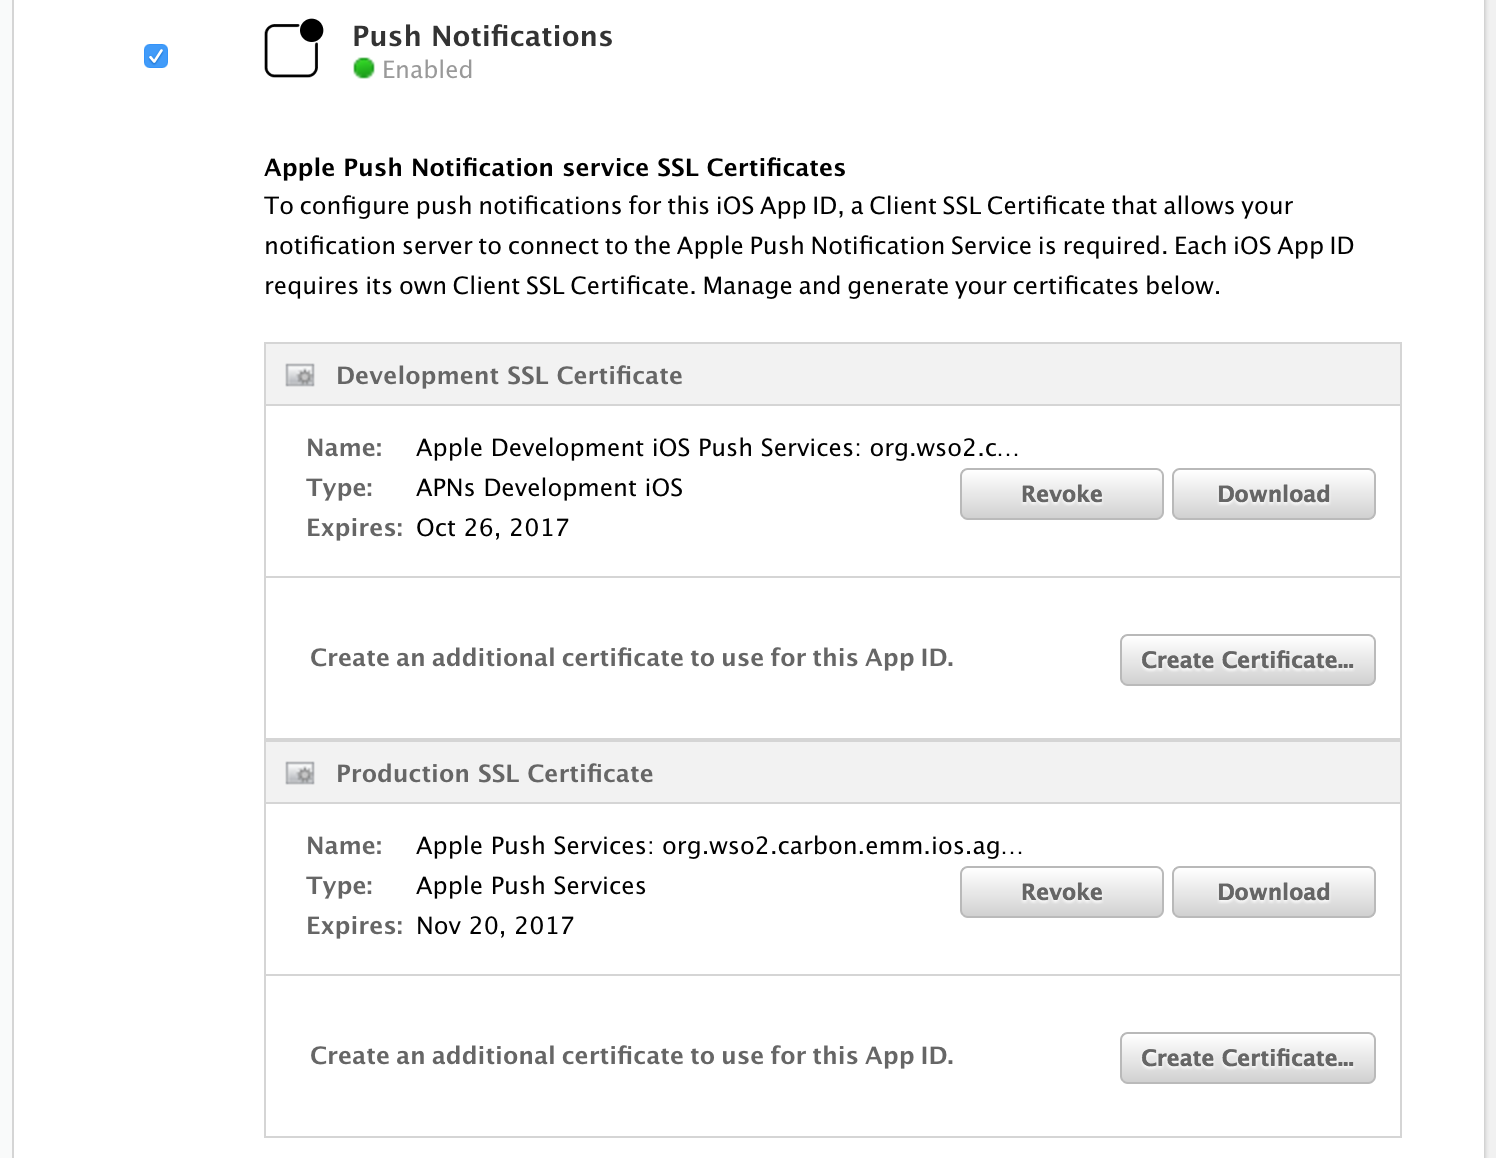 Generating an apns certificate iot server 310 wso2 documentation once push notification is enabled you are able to generate the development and production certificates 1betcityfo Images